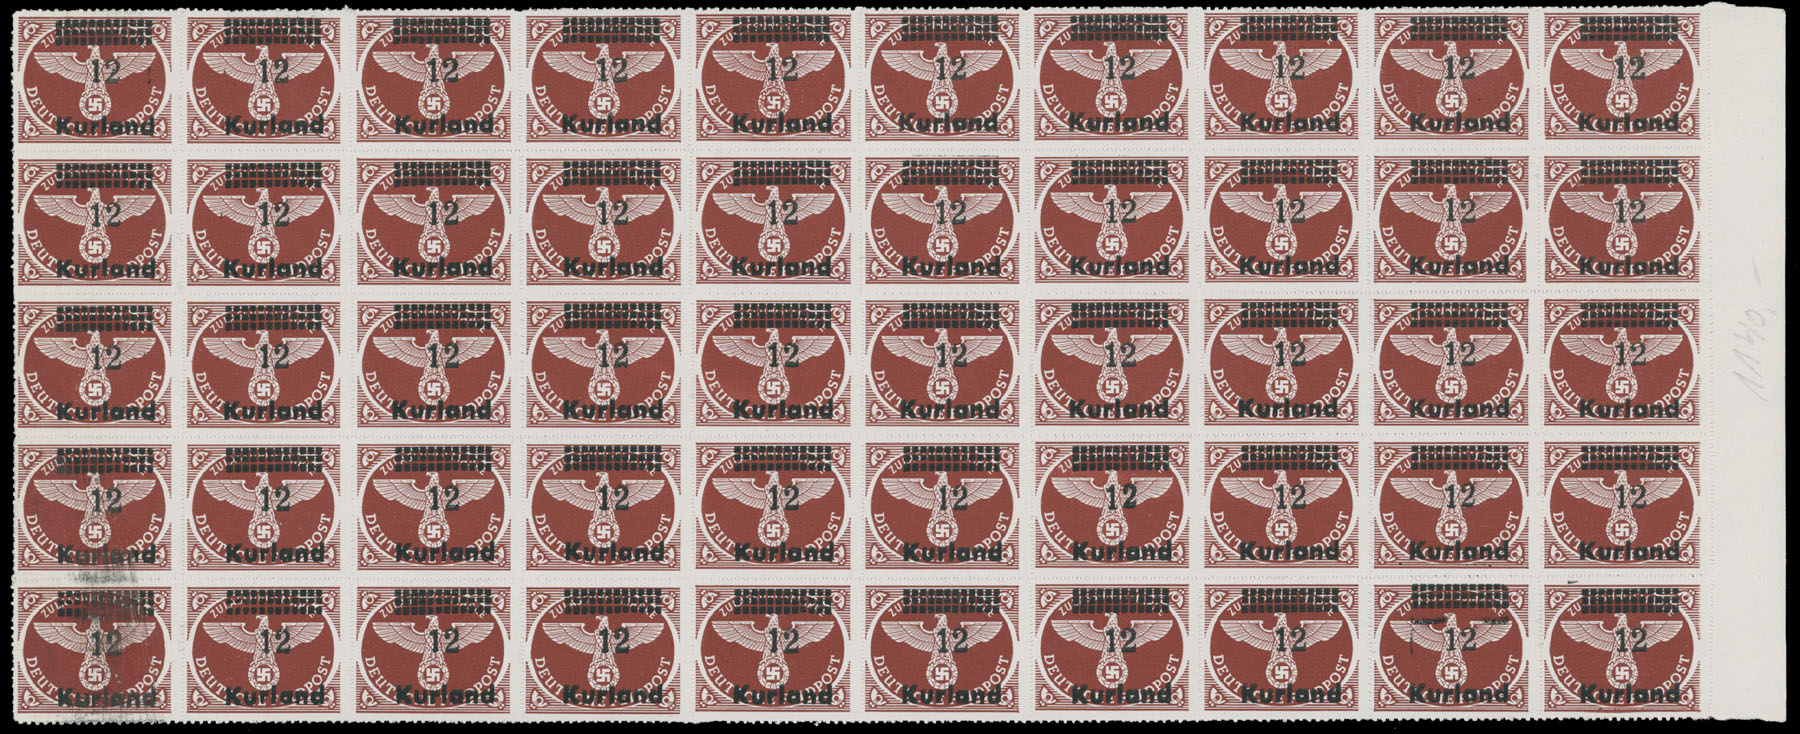 Lot 420 - germany. occupation issues of the world war ii Latvia (Lettland) - Kurland -  Raritan Stamps Inc. Live Bidding Auction #80